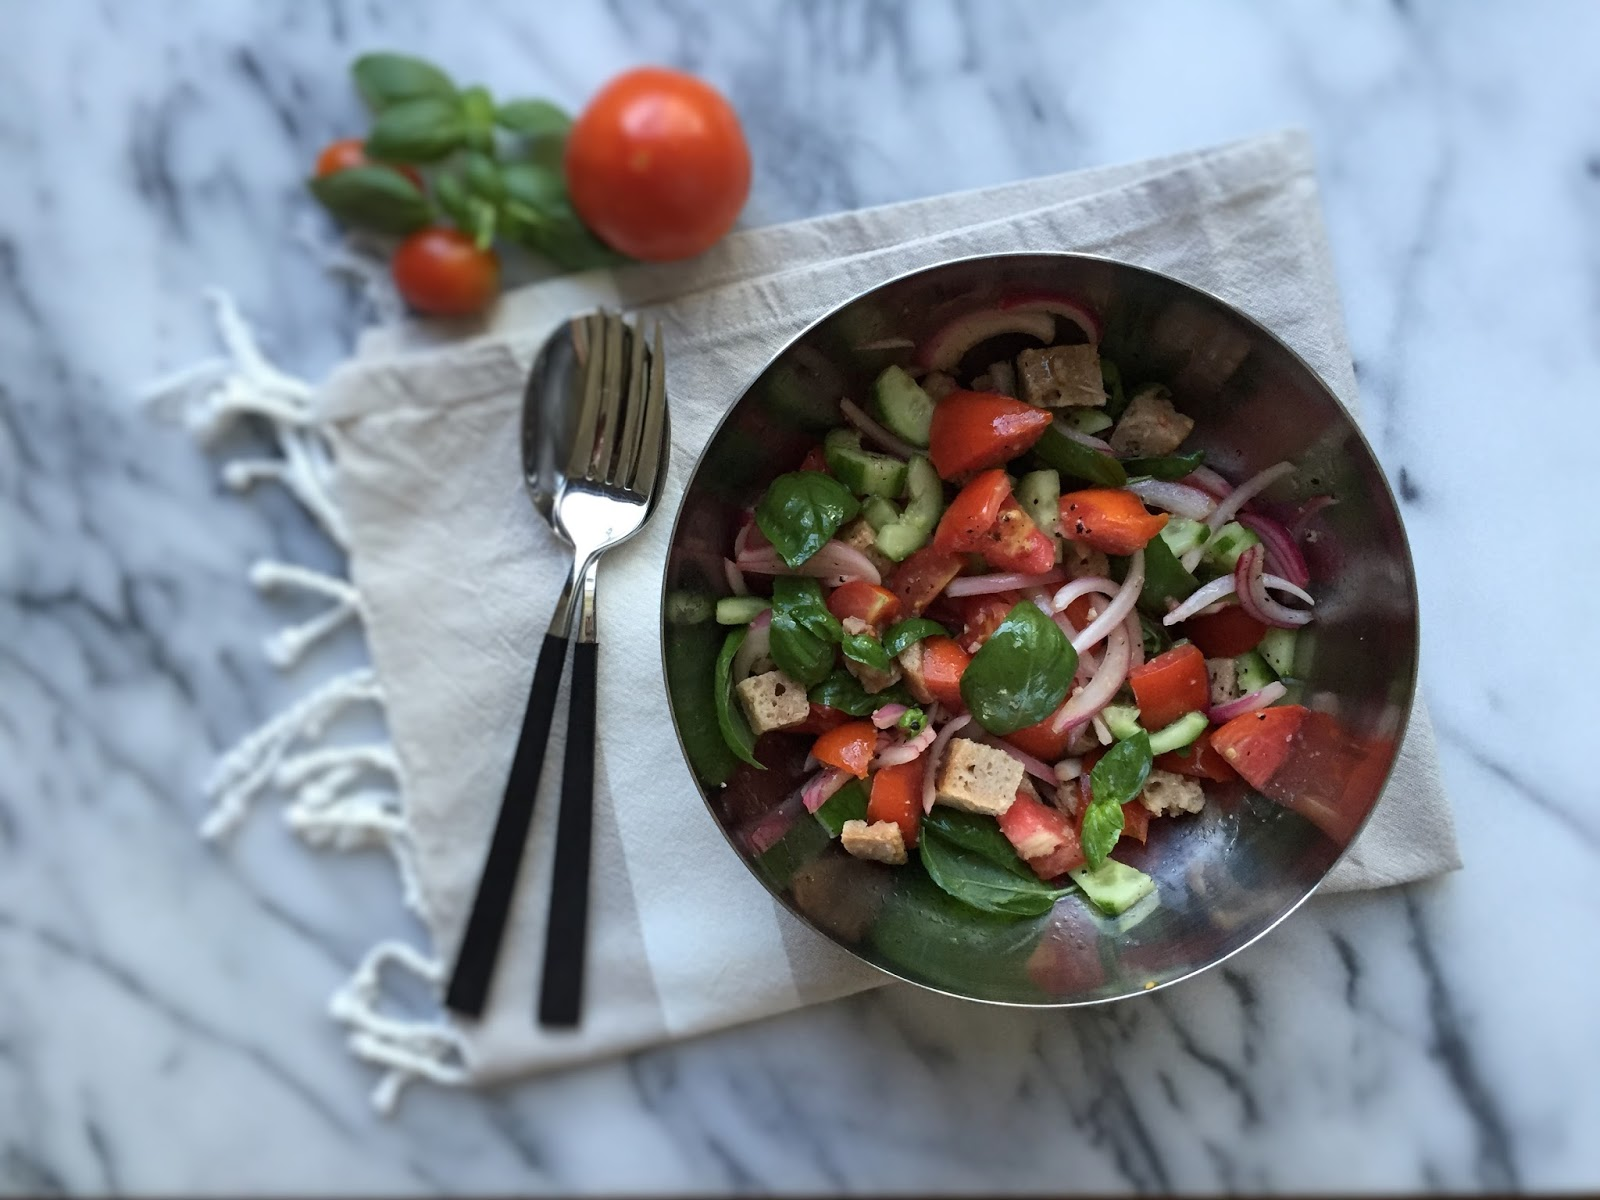 Panzanella (Tuscan bread and tomato salad)